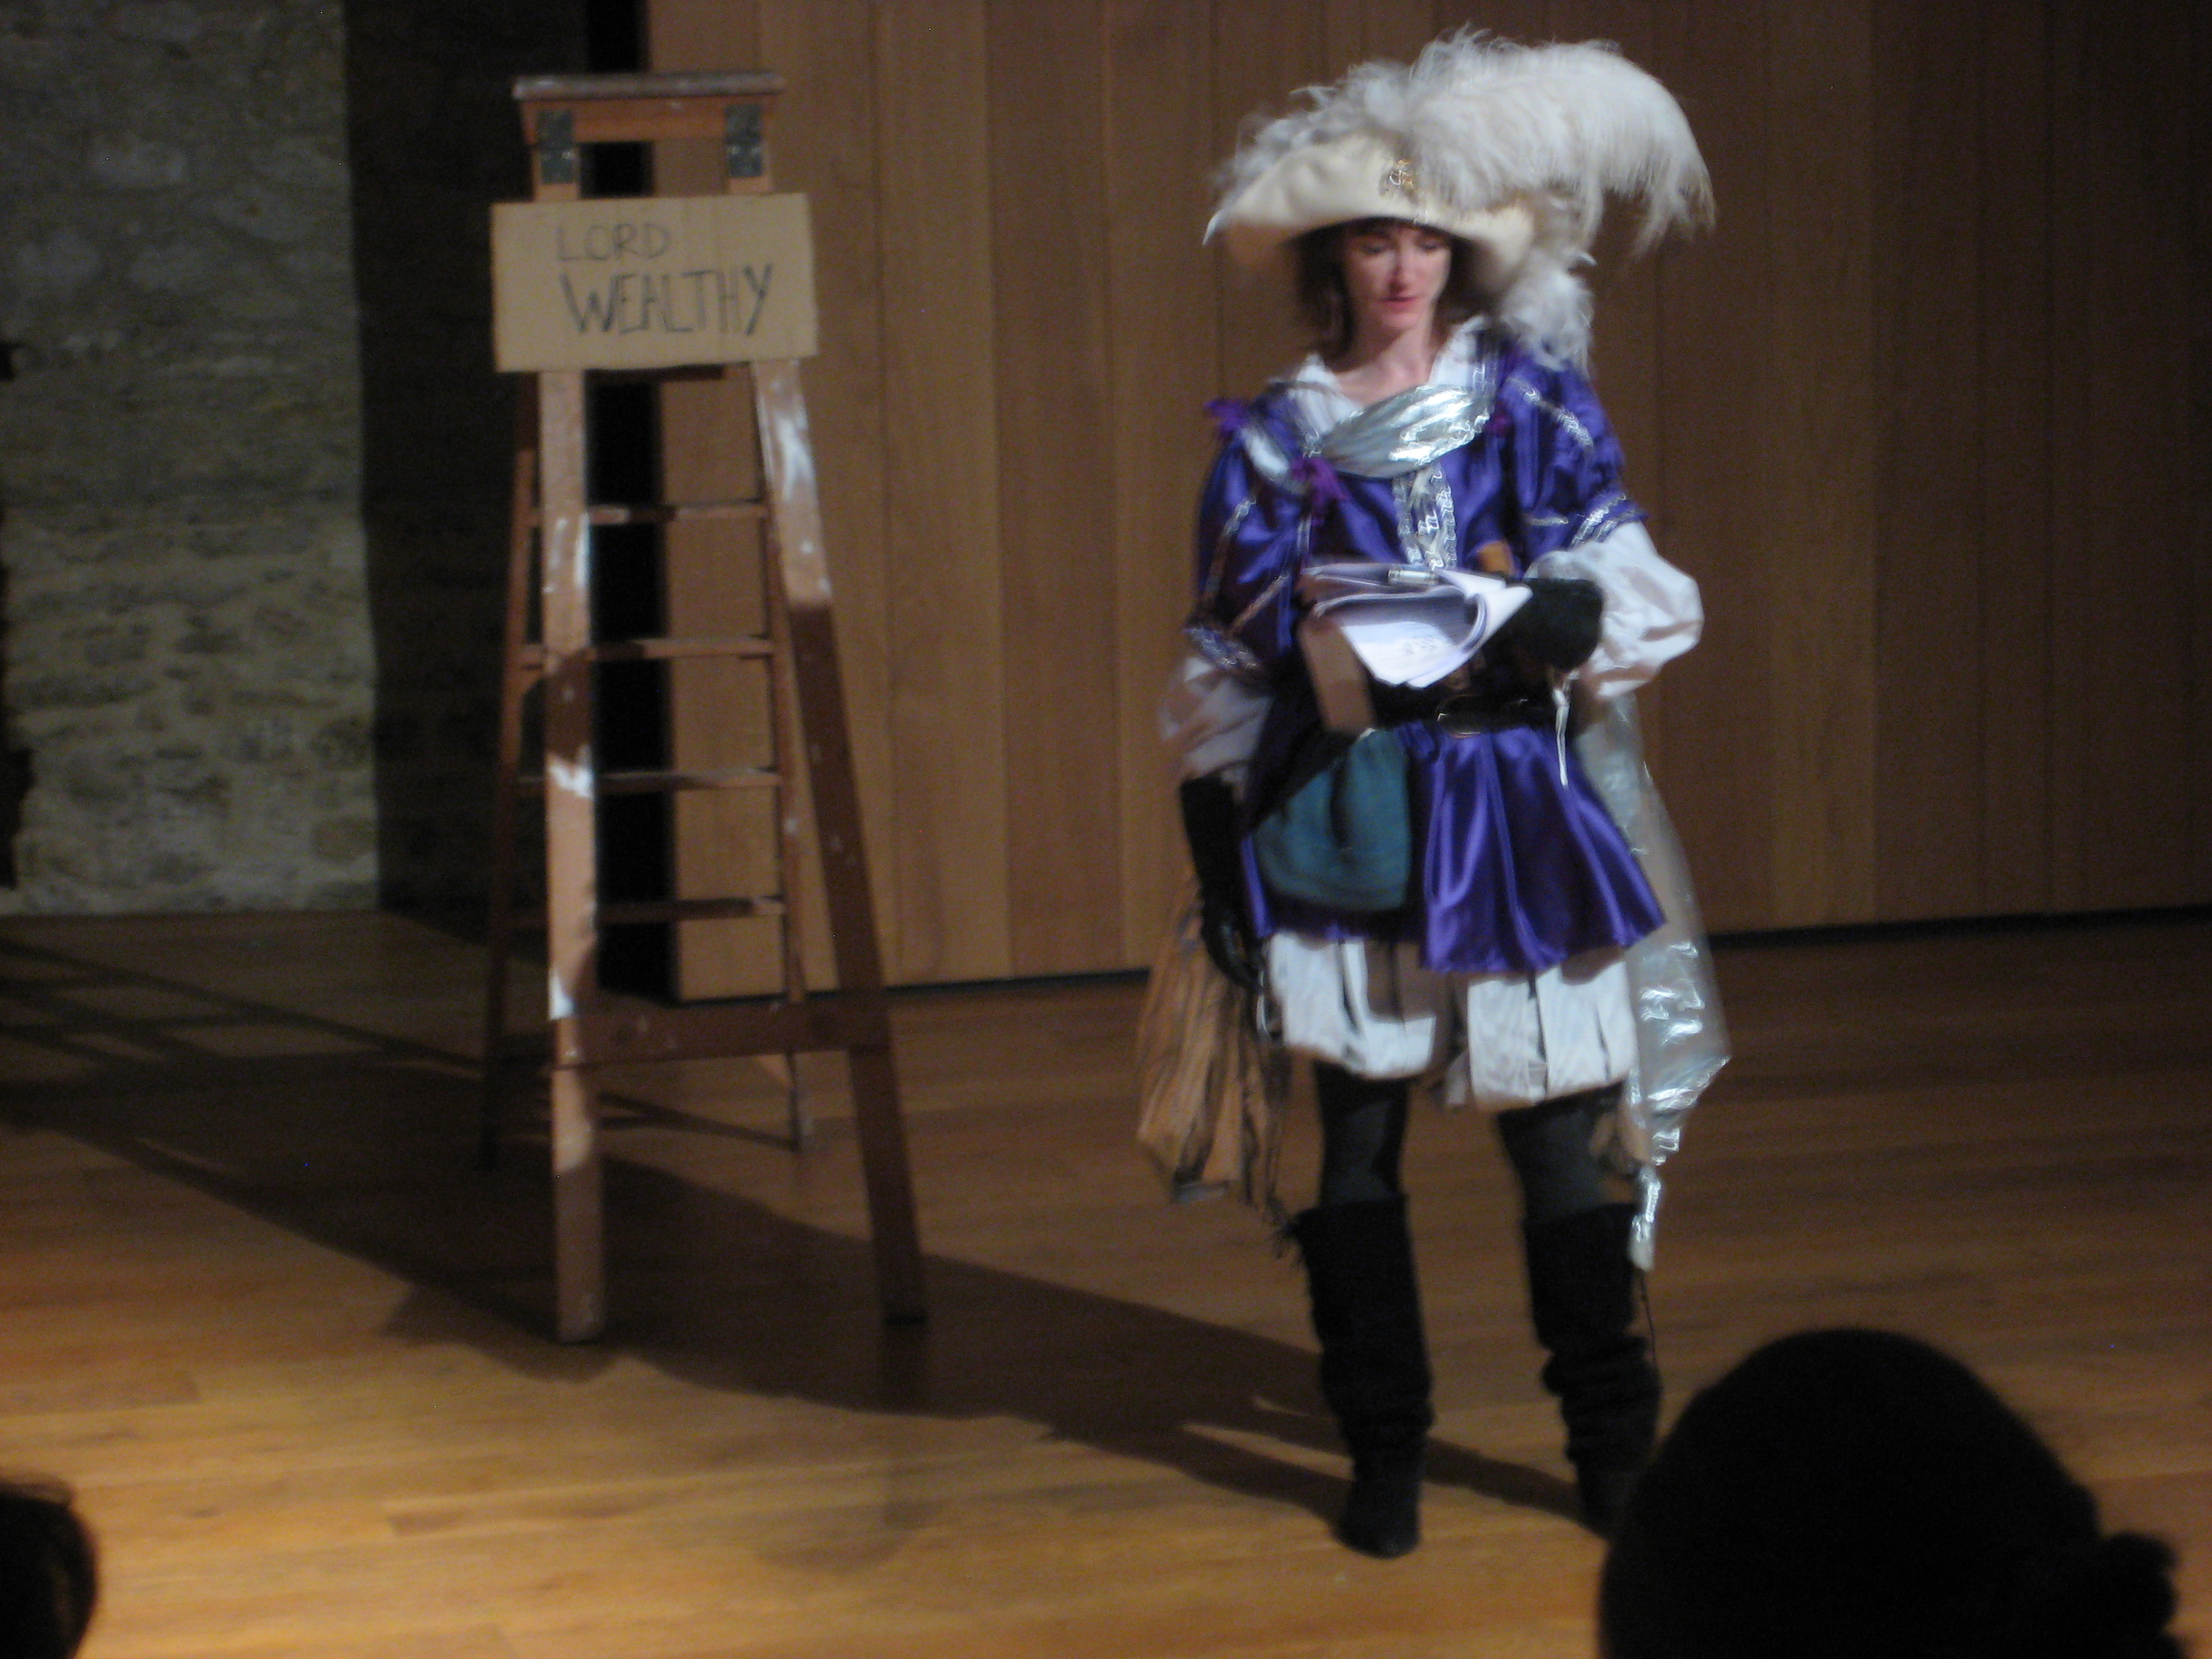 Kelley Costigan as Young Lord Wealthy